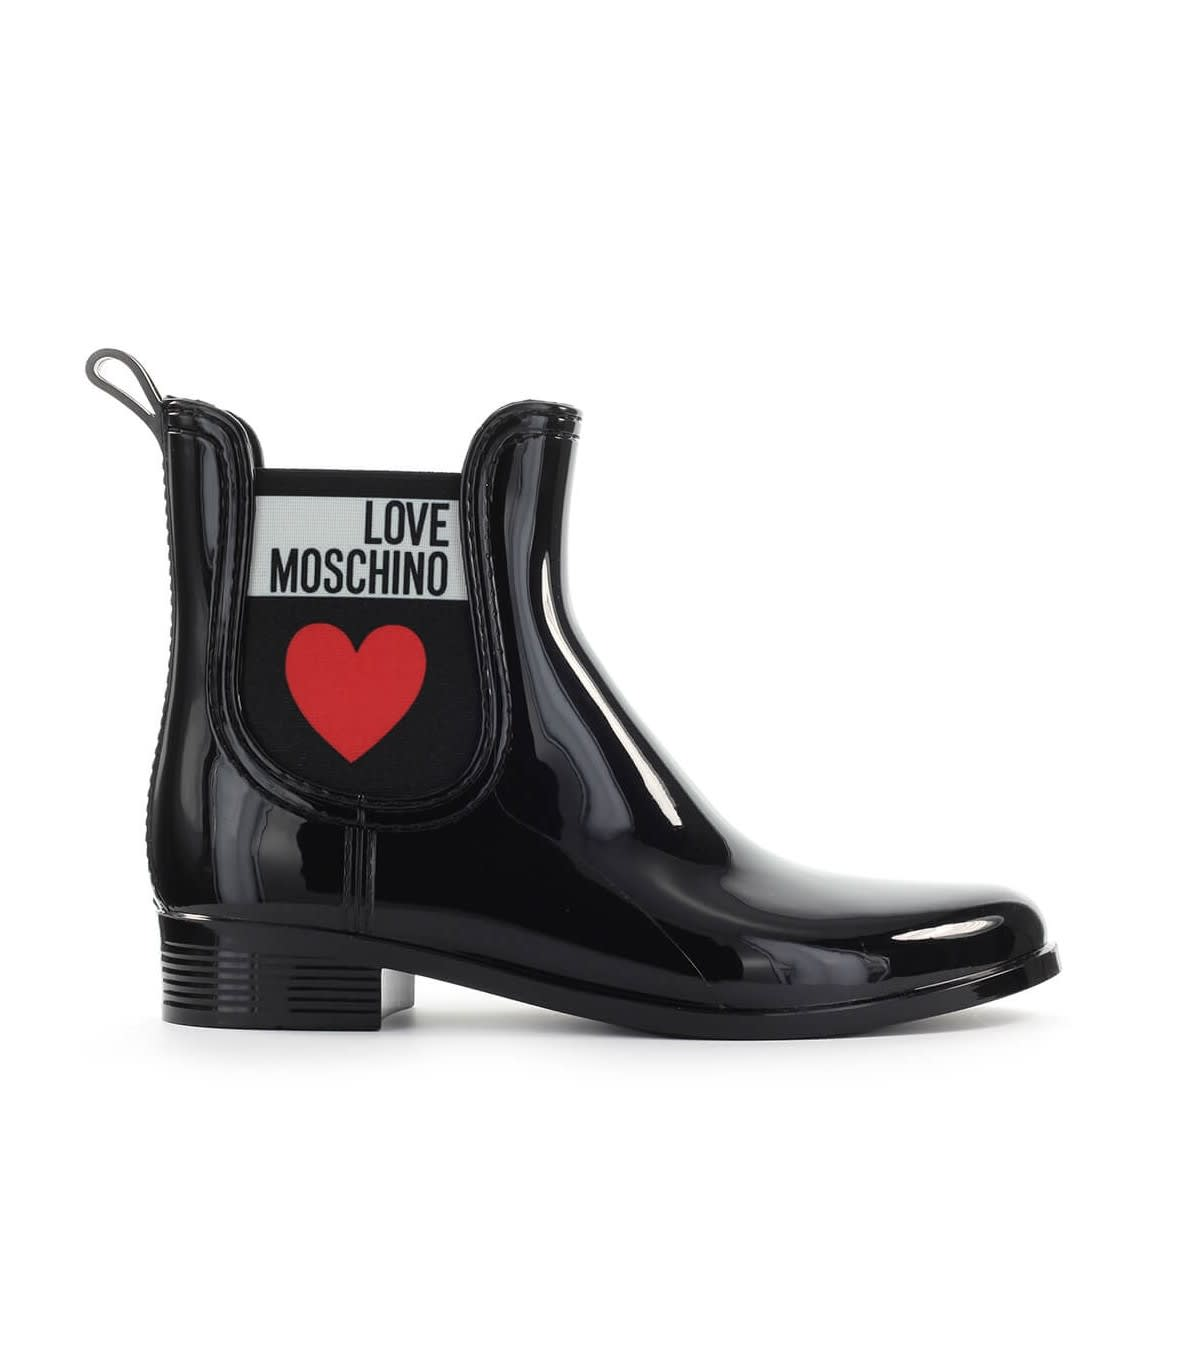 Women/'s Ankle Boots LOVE MOSCHINO JA15584 Vit Neopr Synthetic Leather Black